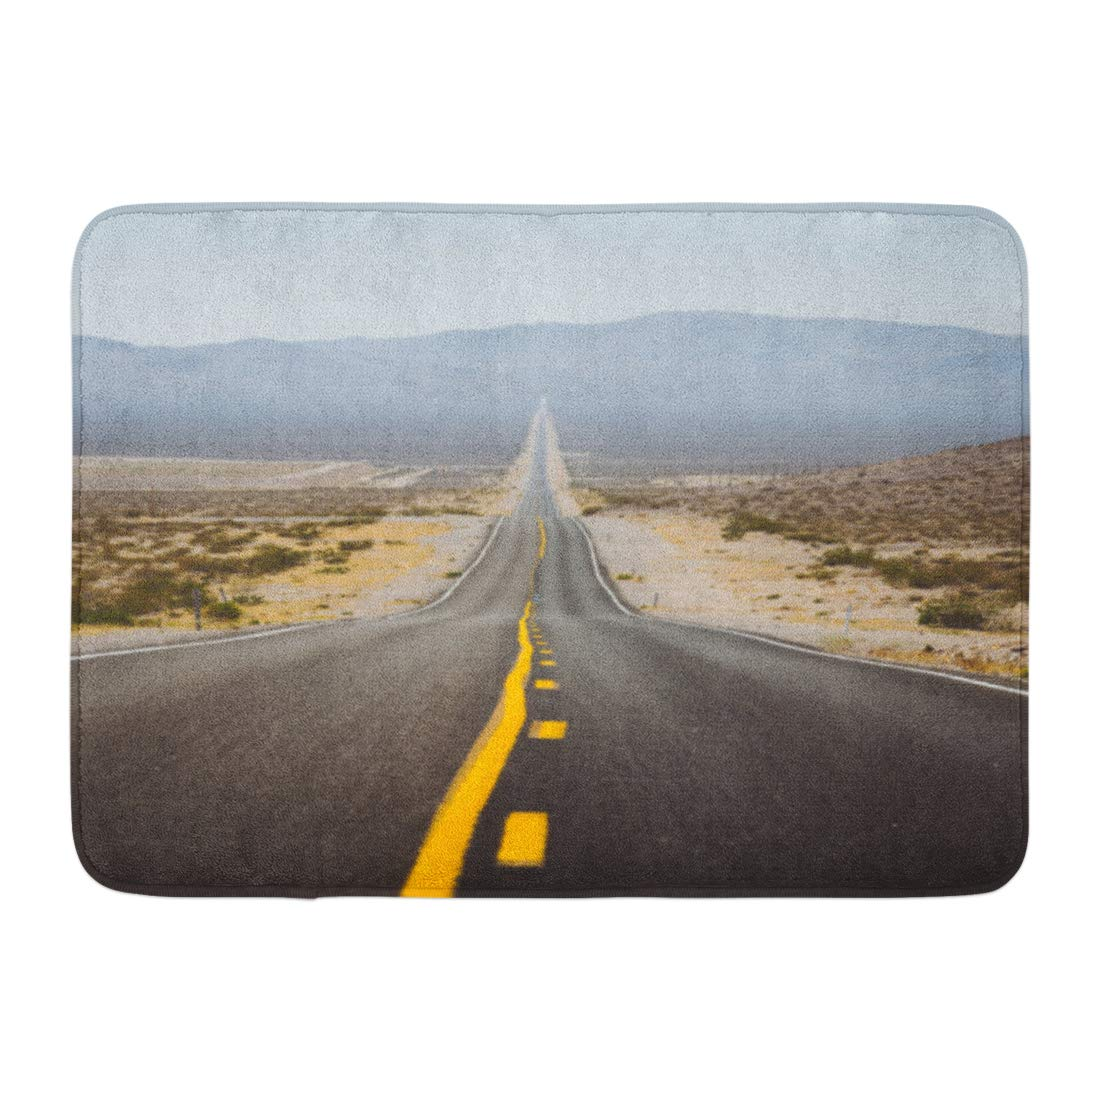 Emvency Bath Mat Classic Panorama View of Endless Straight Road Running Through The Barren Scenery American Southwest Bathroom Decor Rug 16'' x 24''